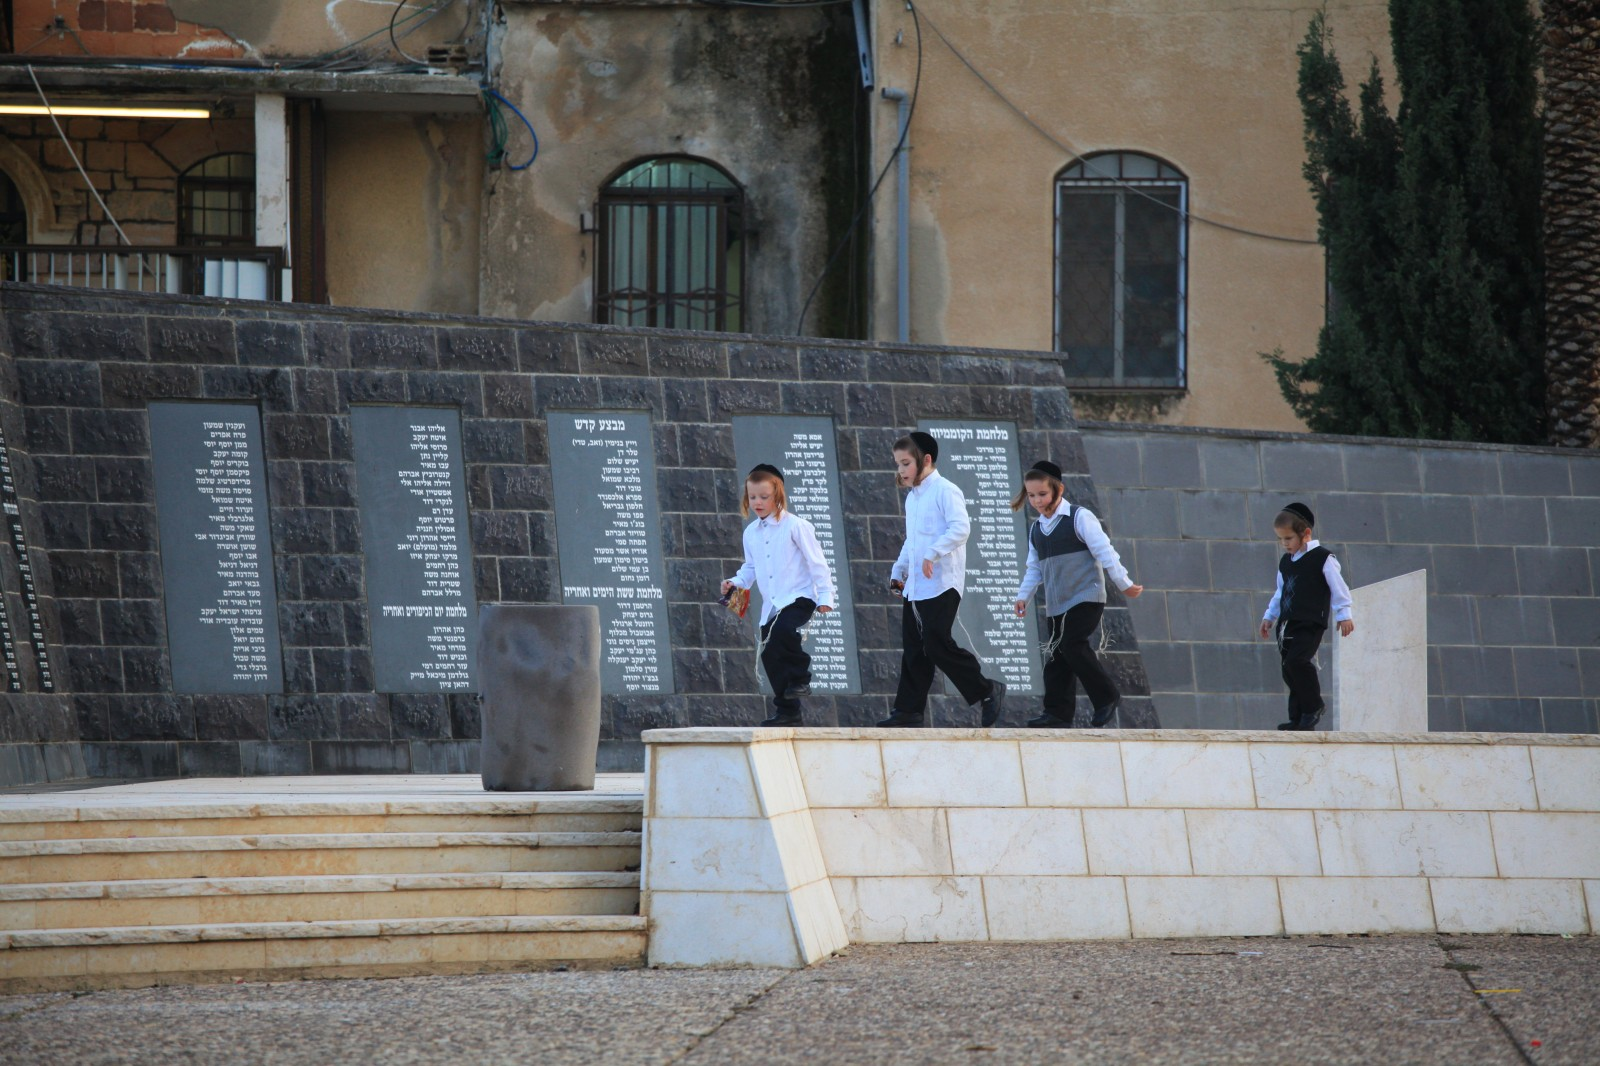 Properly dresses Jewish boys - with payots (sidelocks) and those funny strings hanging from their shirts